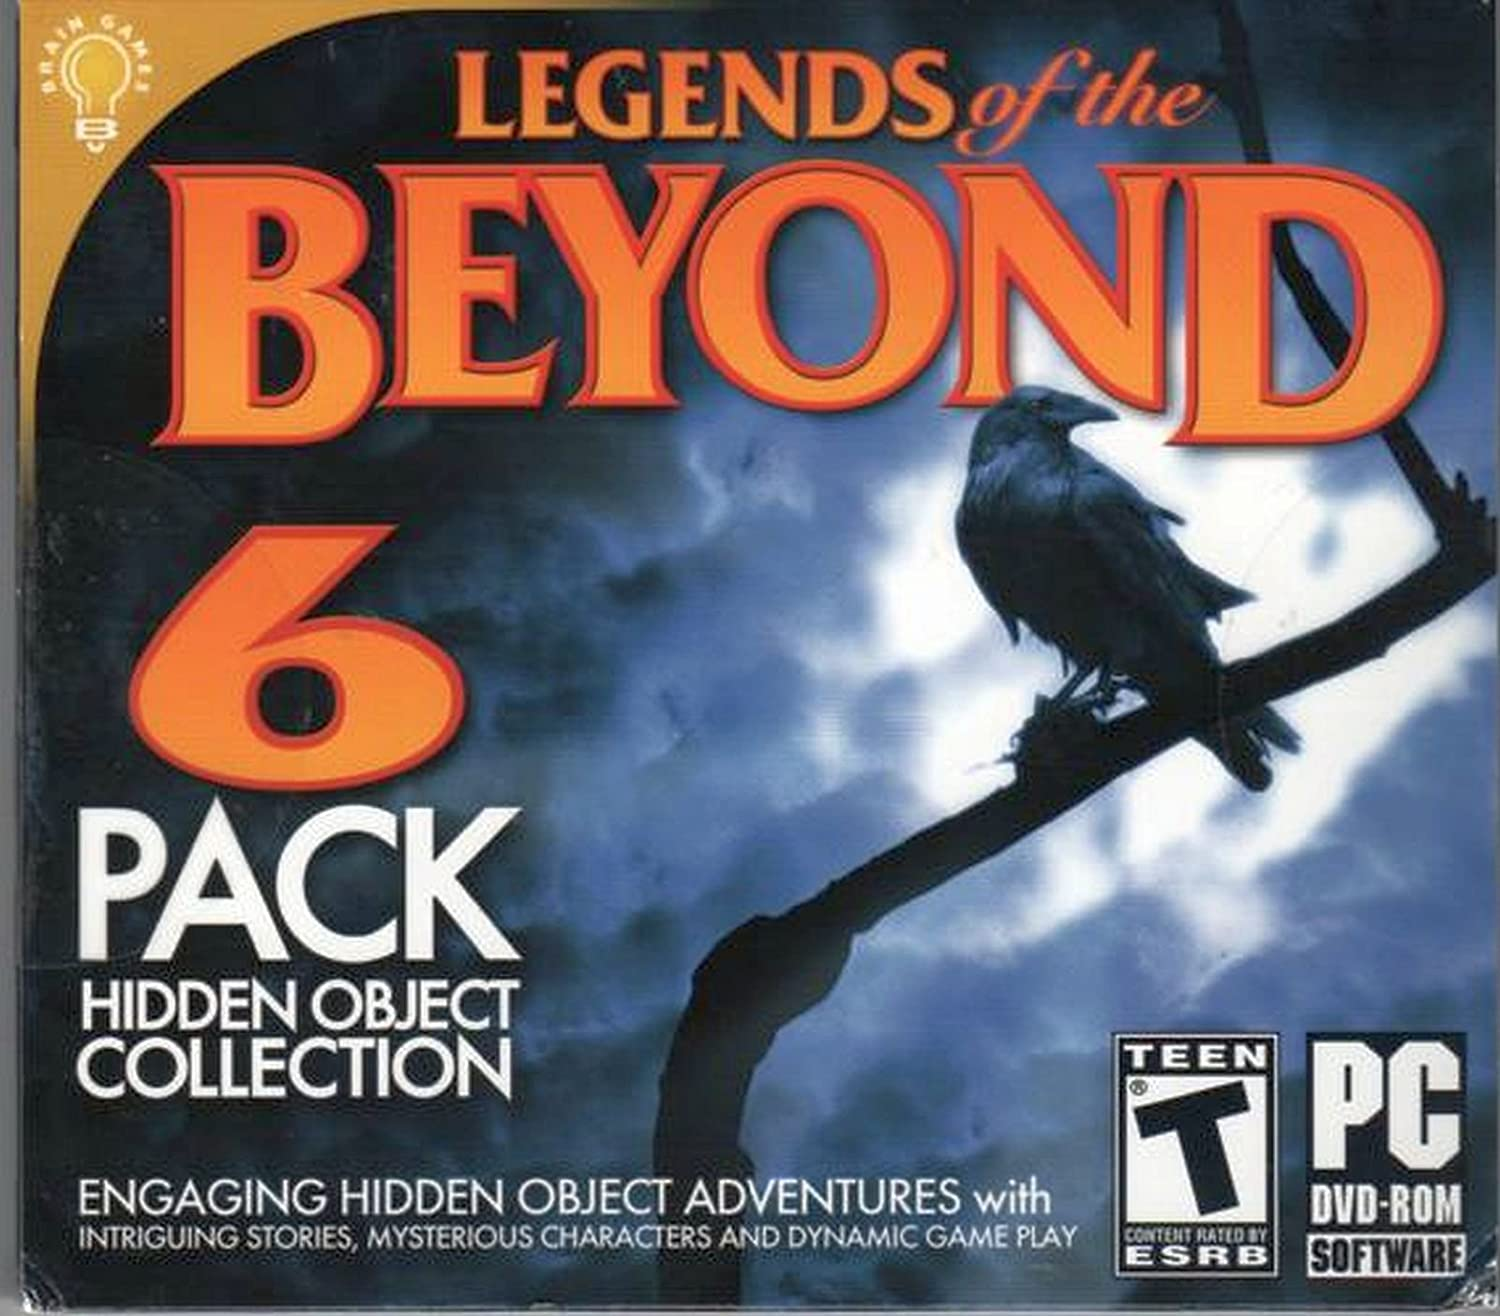 LEGENDS OF THE BEYOND Hidden Object Collection 6 PACK PC Game